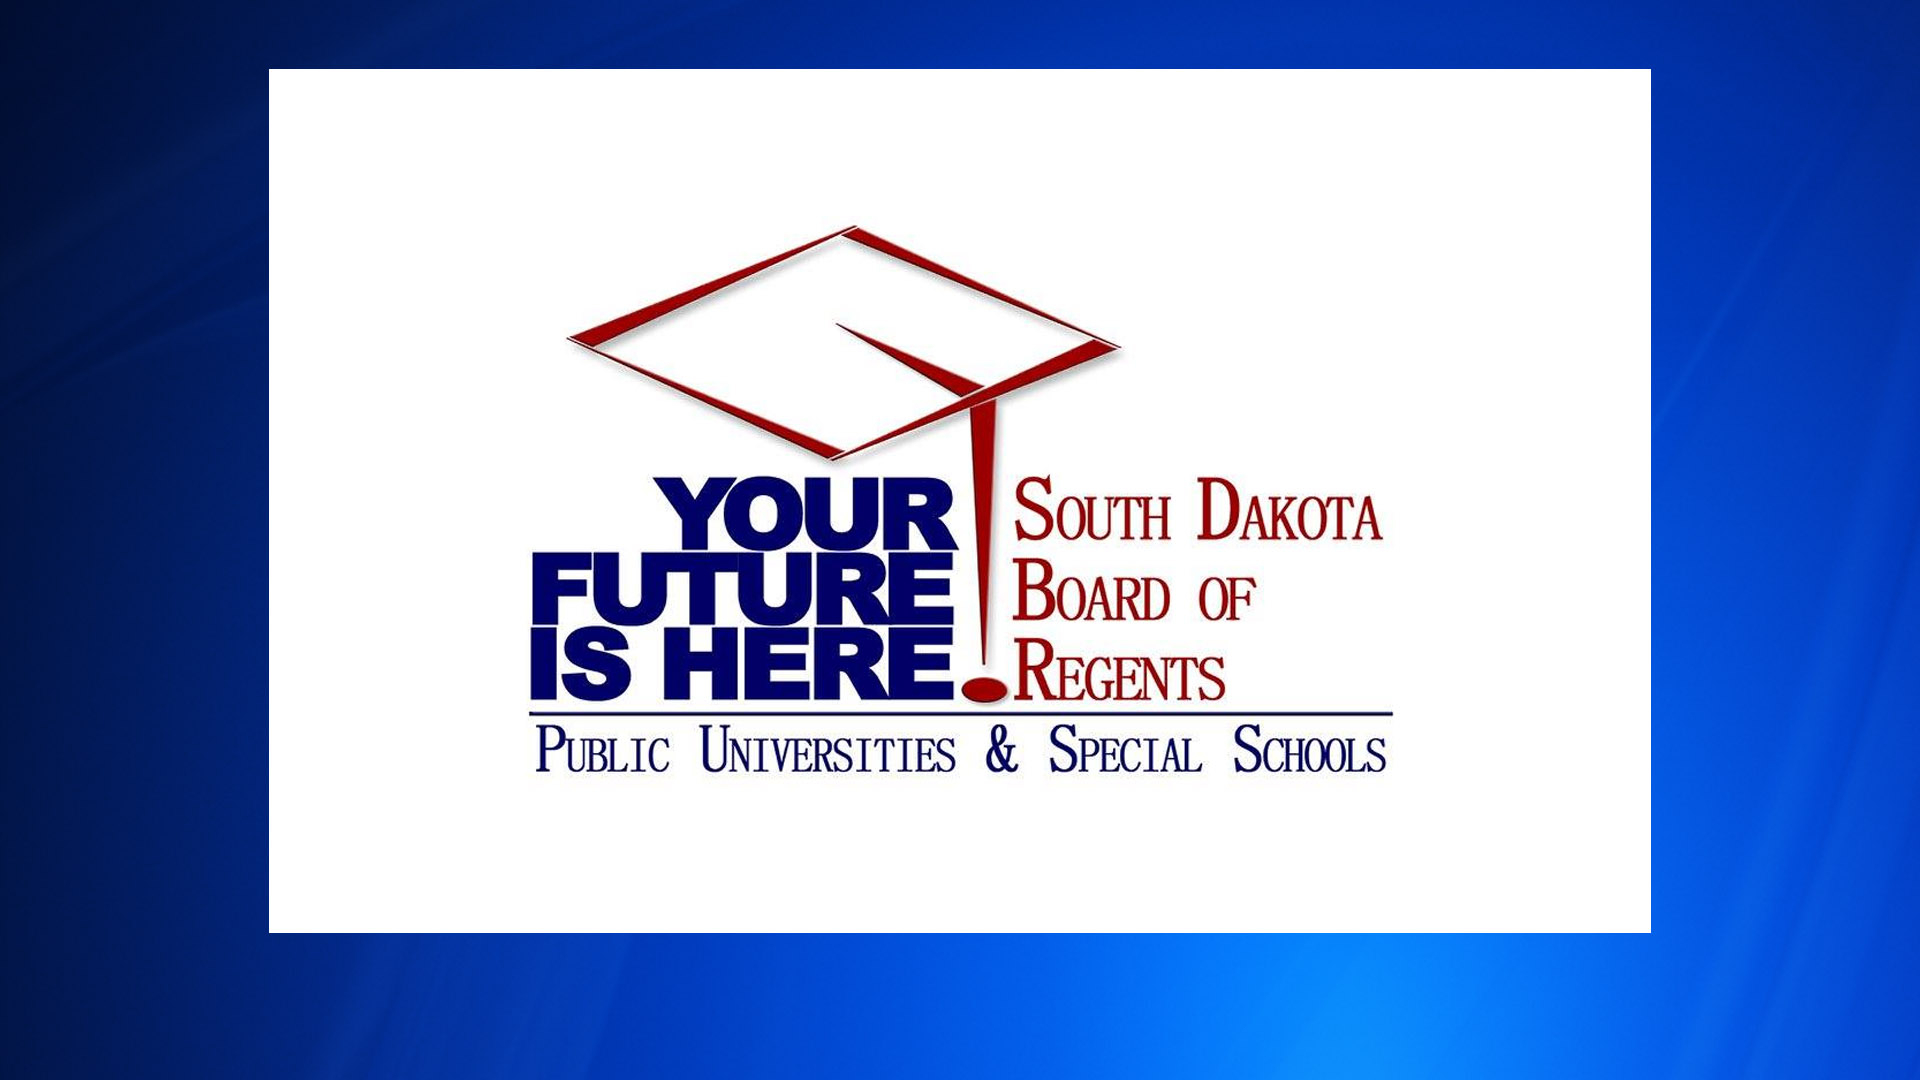 Mandatory Tuition And Fees For On Campus Students Won't Go Intended For South Dakota State University 2020 Academic Calendar